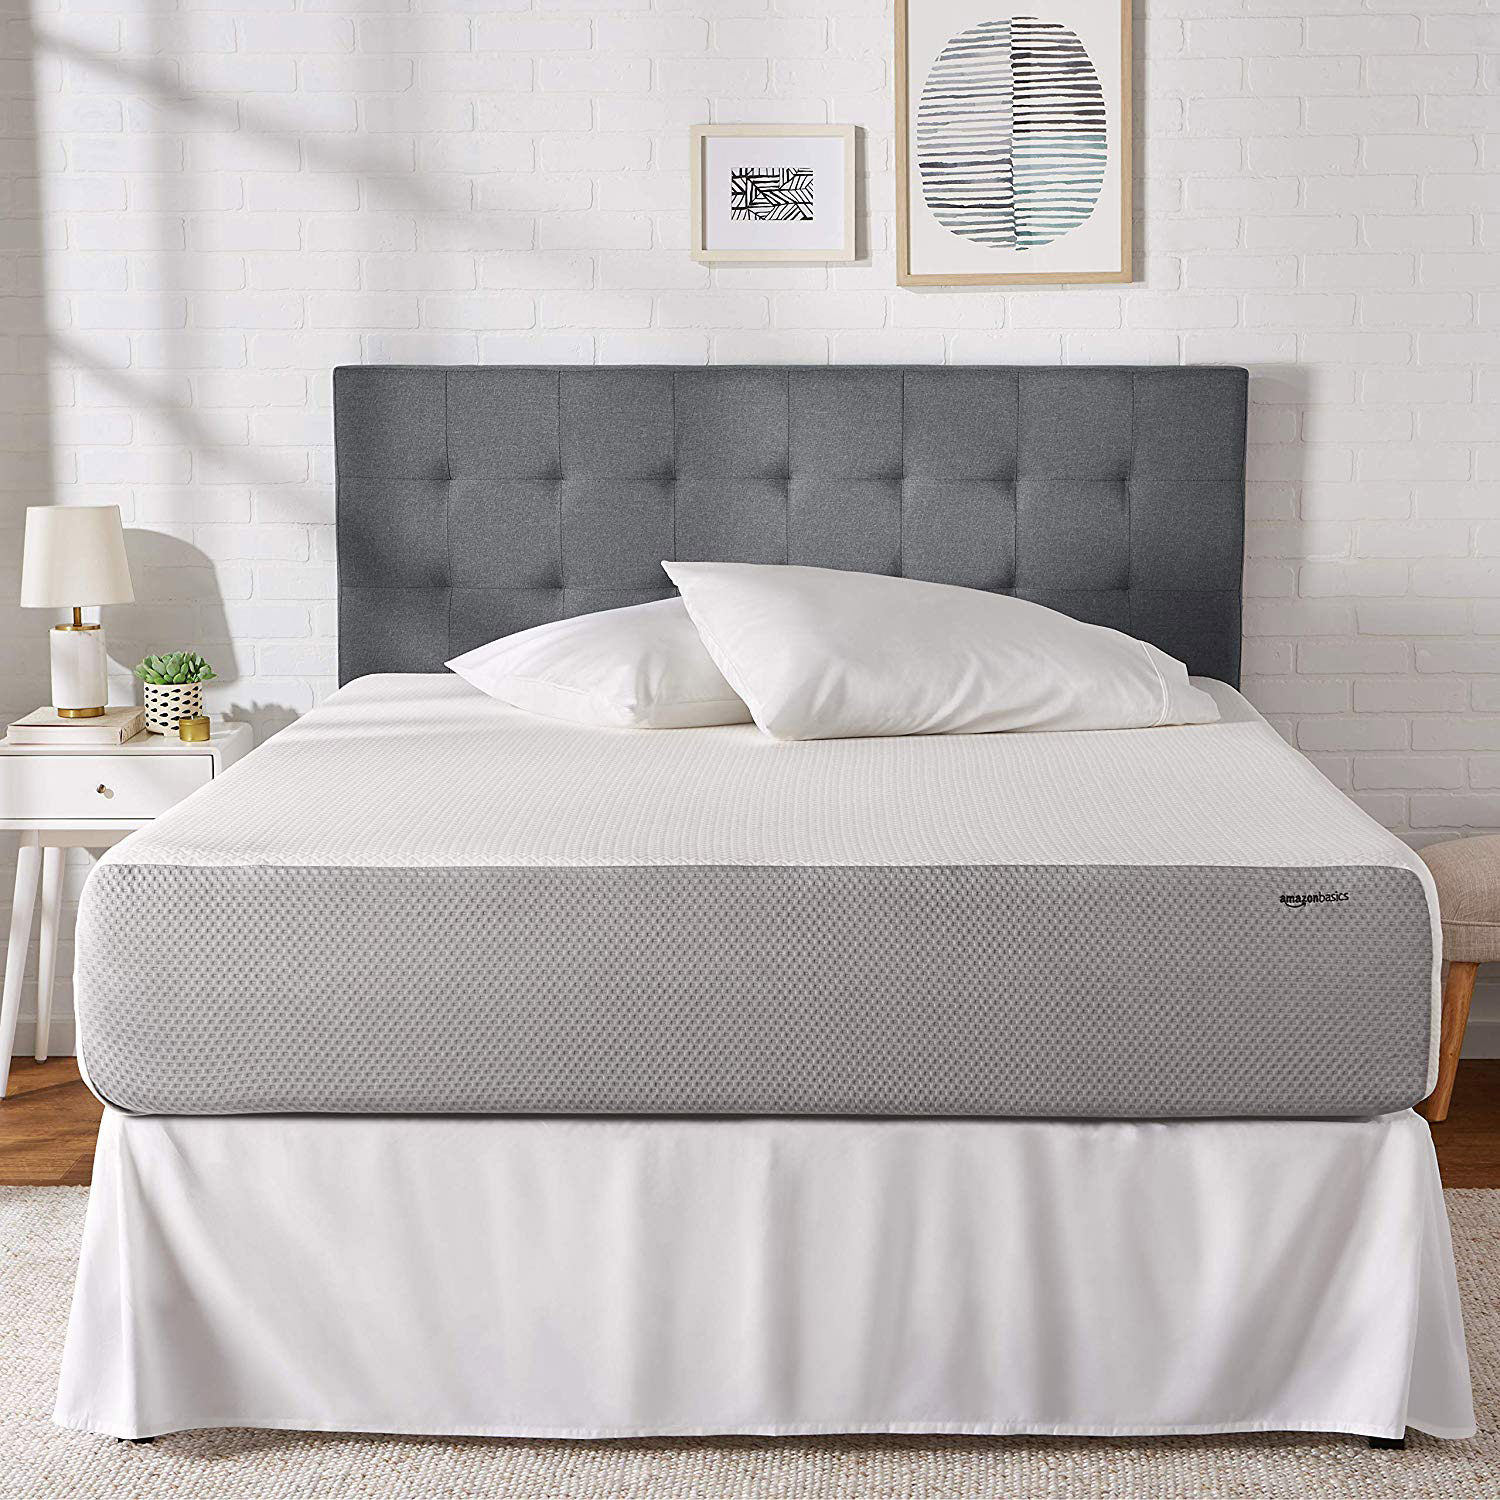 Soft and plush memory foam mattress